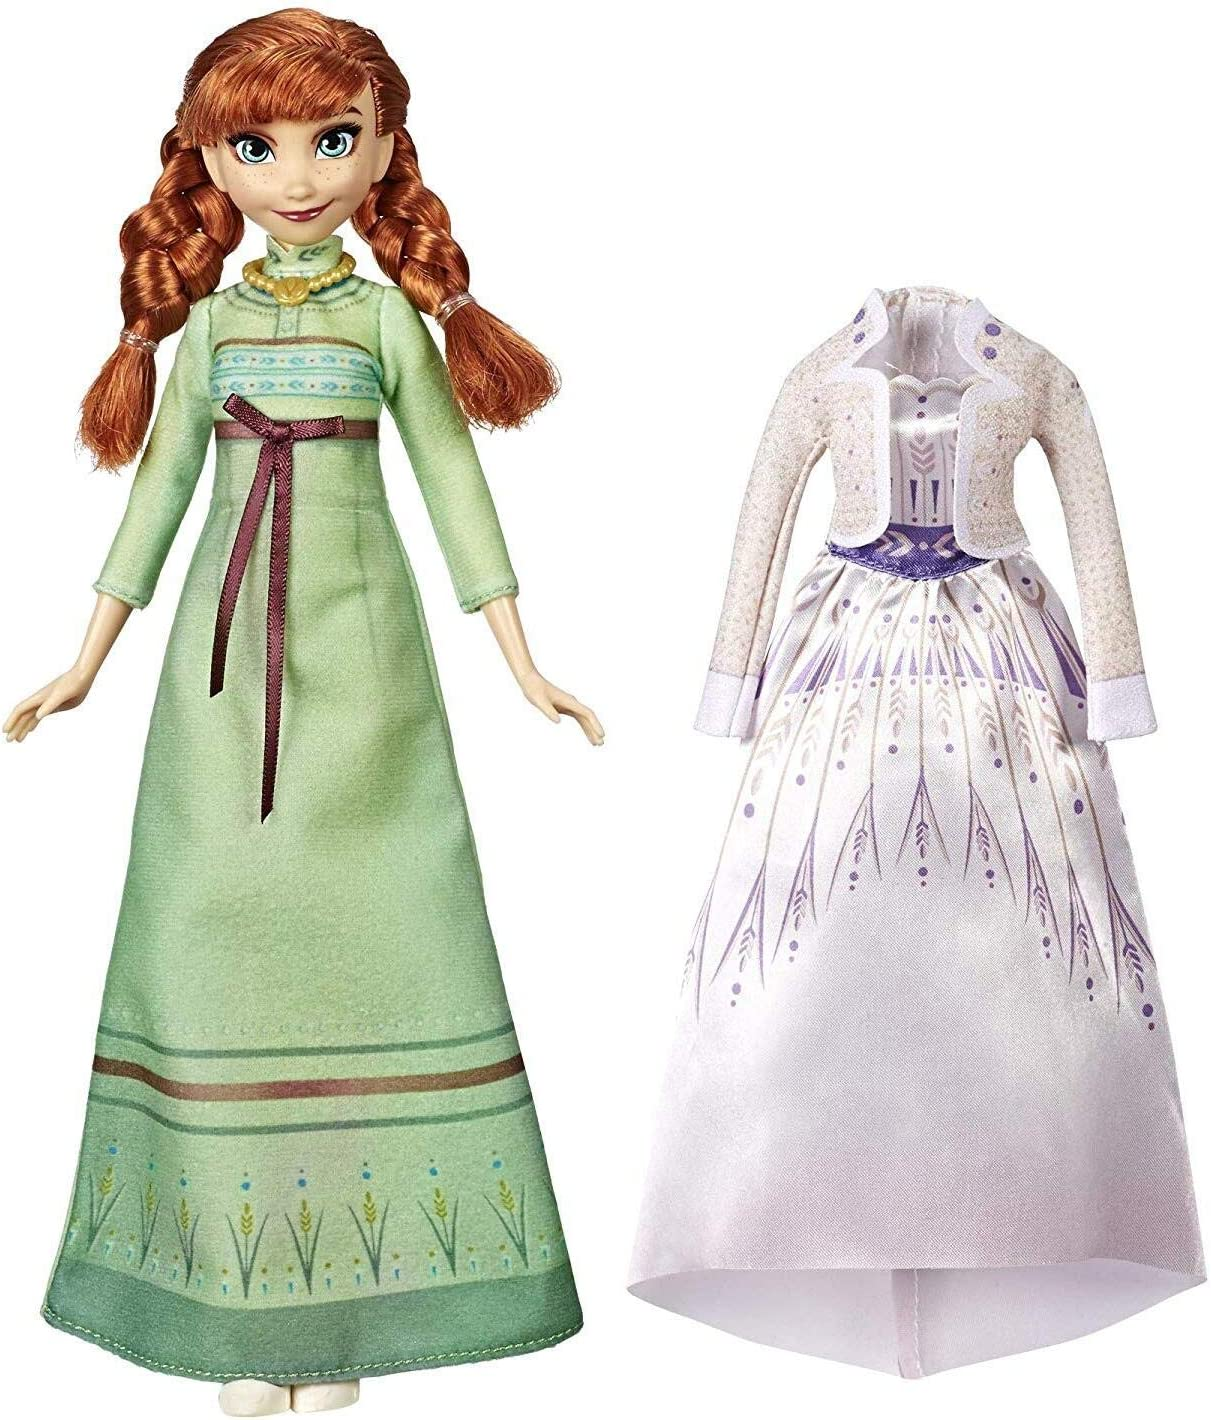 DESIGN DRESSES FOR ELSA /& ANNA NEW IMC TOYS DISNEY FROZEN DRESSES ART SET